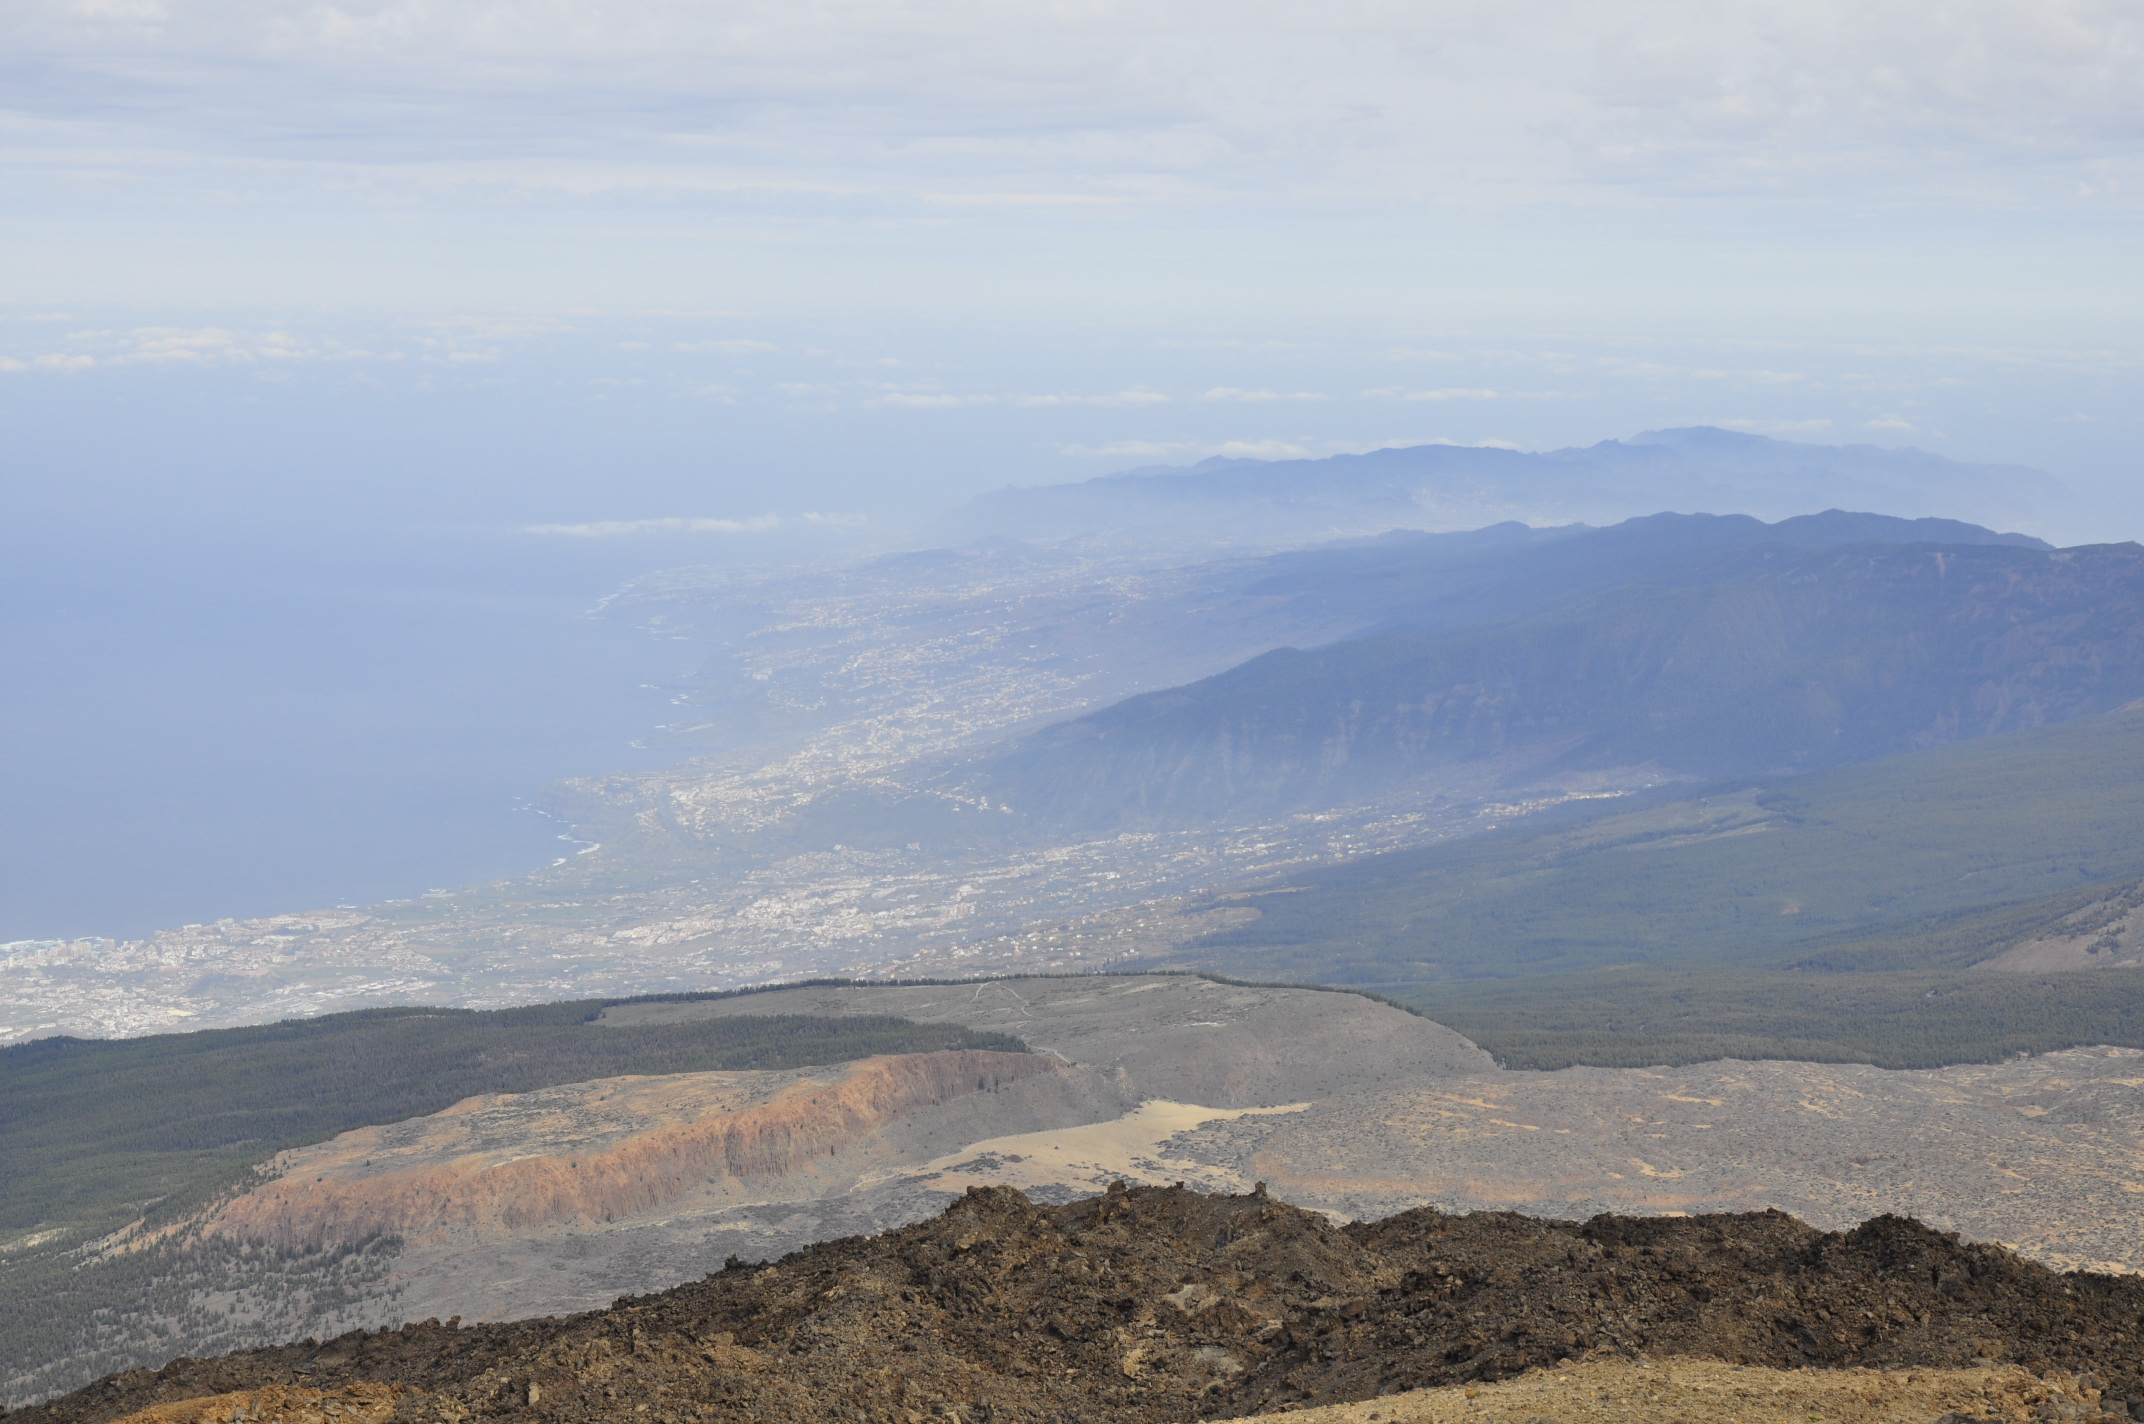 Looking along the North coast of Tenerife, with Puerto de la Cruz near the sea. If Teide should have a large eruption, Puerto de la Cruz is right in the bull's eye, and a reason why Teide is one of the specially watched Decade Volcanoes.